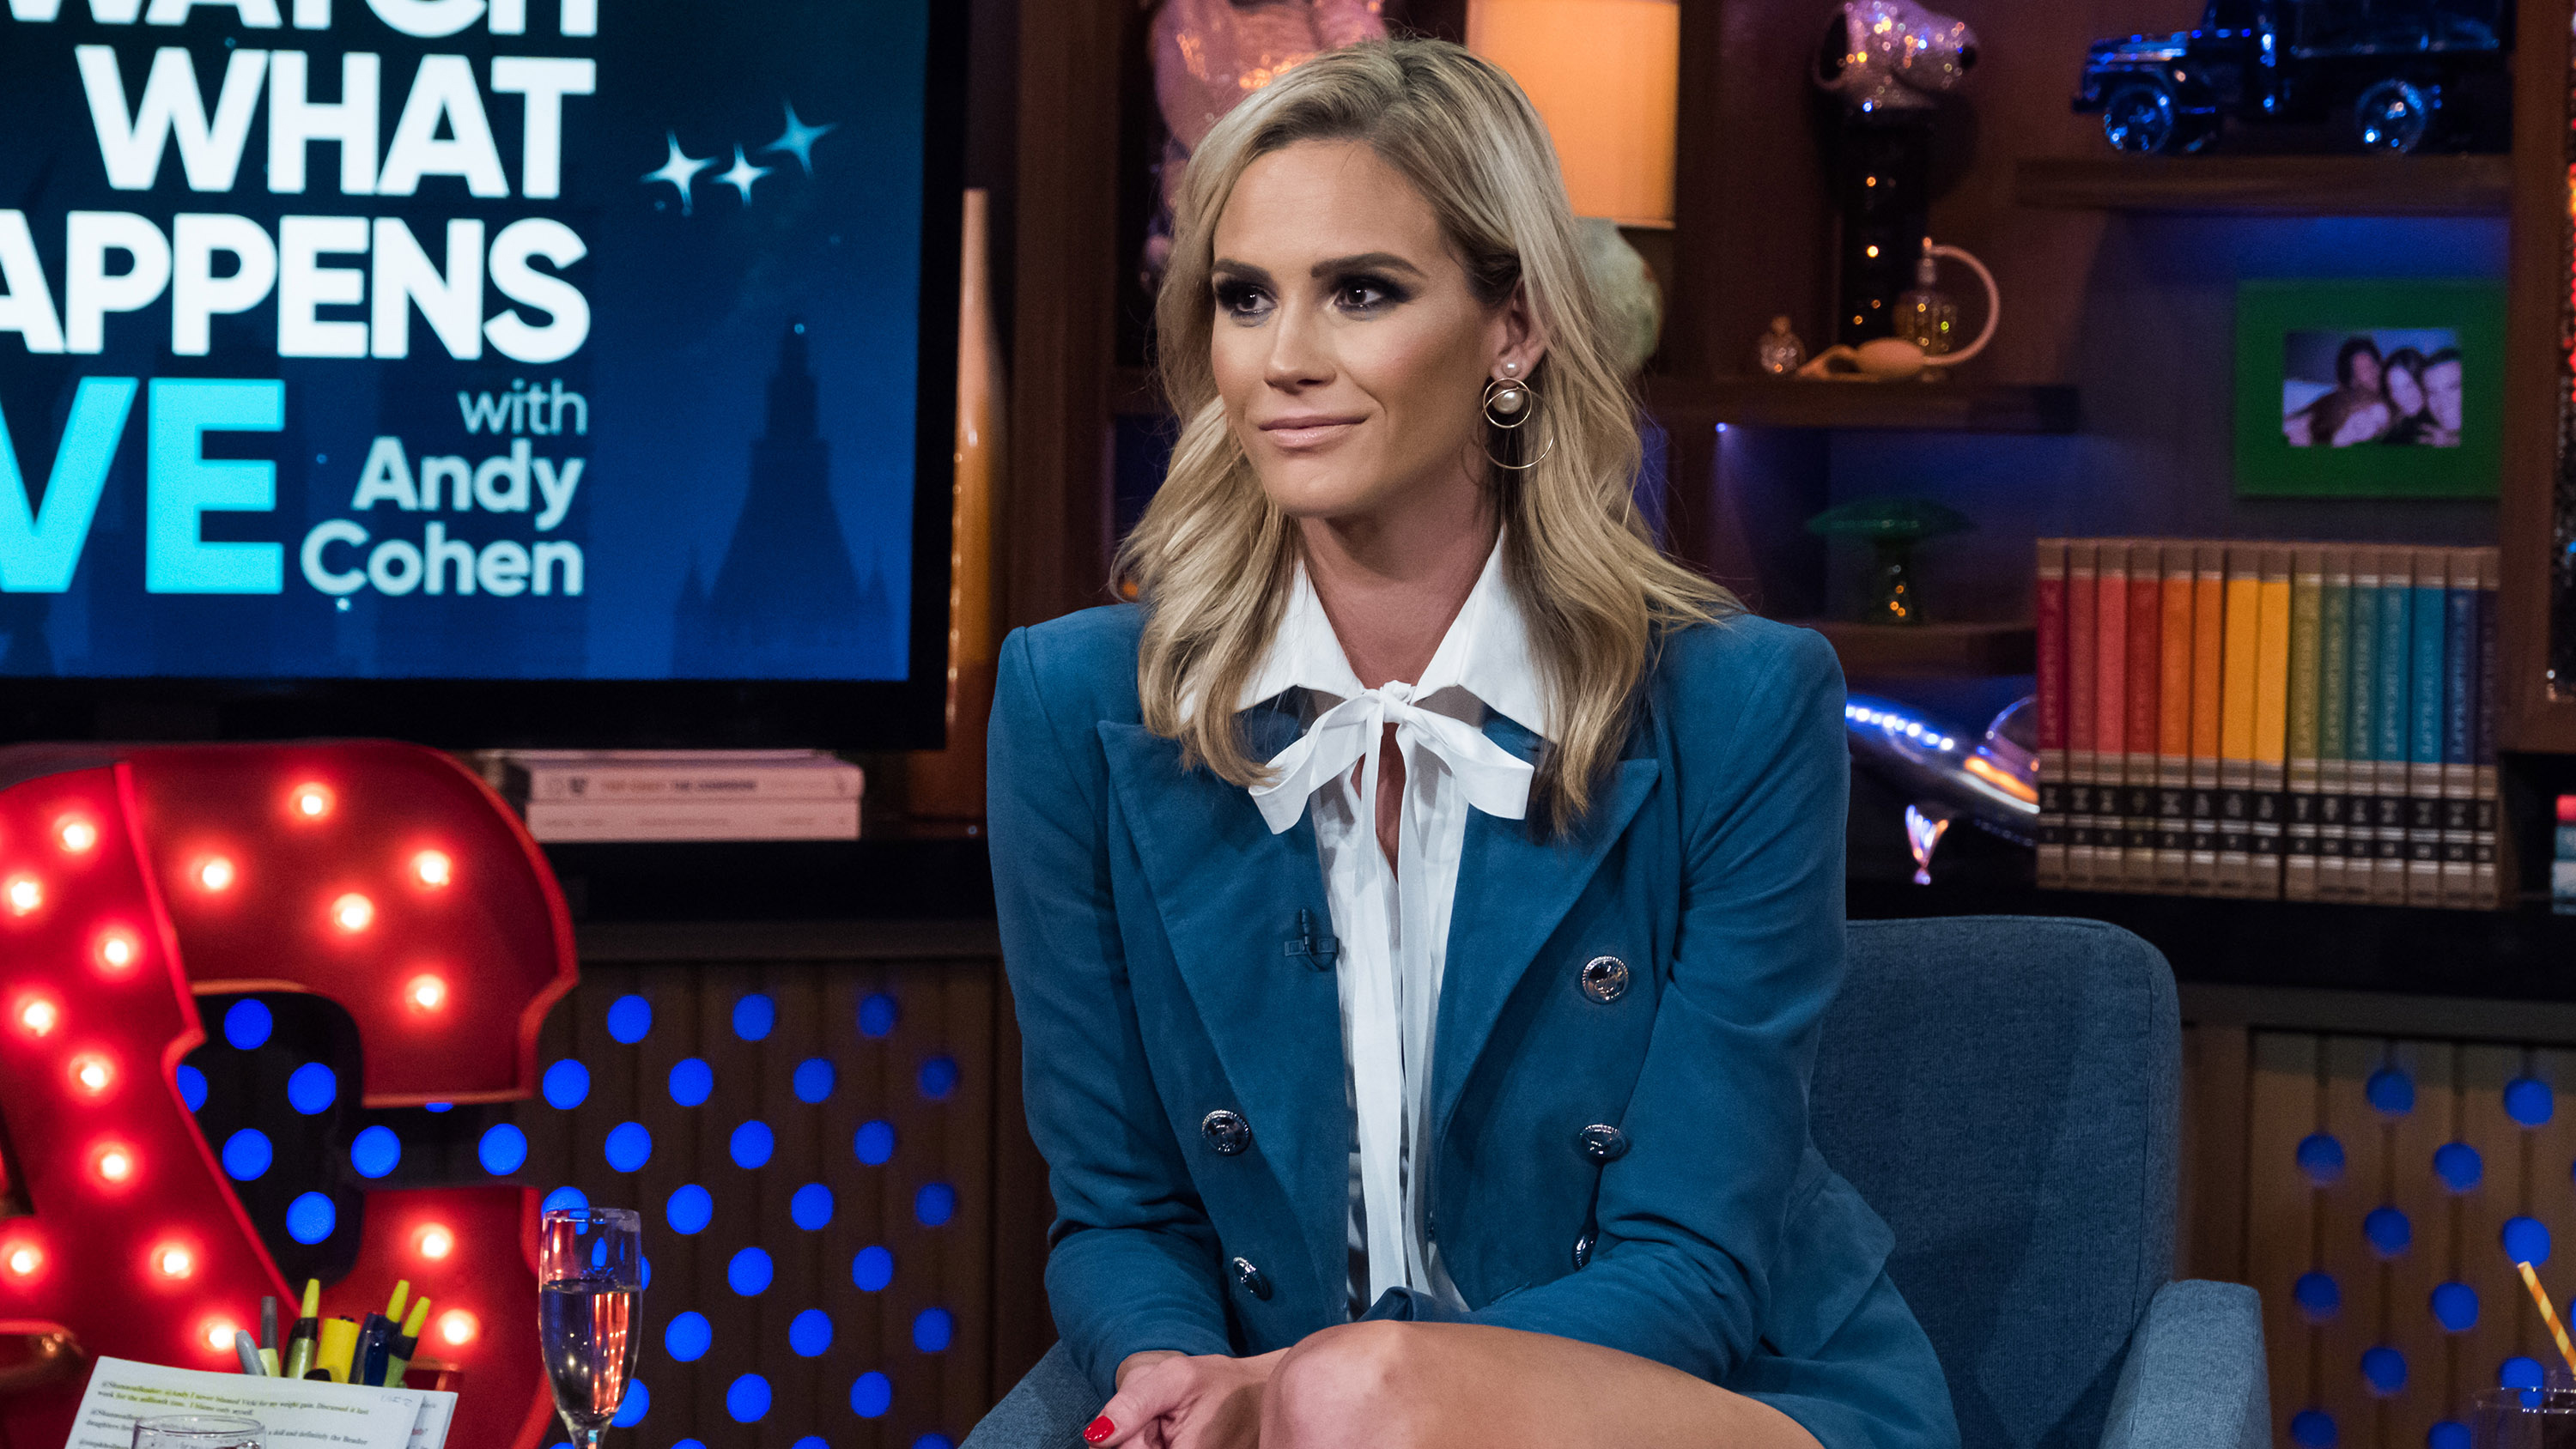 Westlake Legal Group edmonds-getty Meghan King Edmonds breaks silence on husband's alleged affair Nate Day fox-news/shows/the-real-housewives fox-news/entertainment/tv fox-news/entertainment/genres/reality fox-news/entertainment/events/scandal fox-news/entertainment fox news fnc/entertainment fnc f3edc3f7-c04d-53c7-b0a7-96b97a53c3bd article